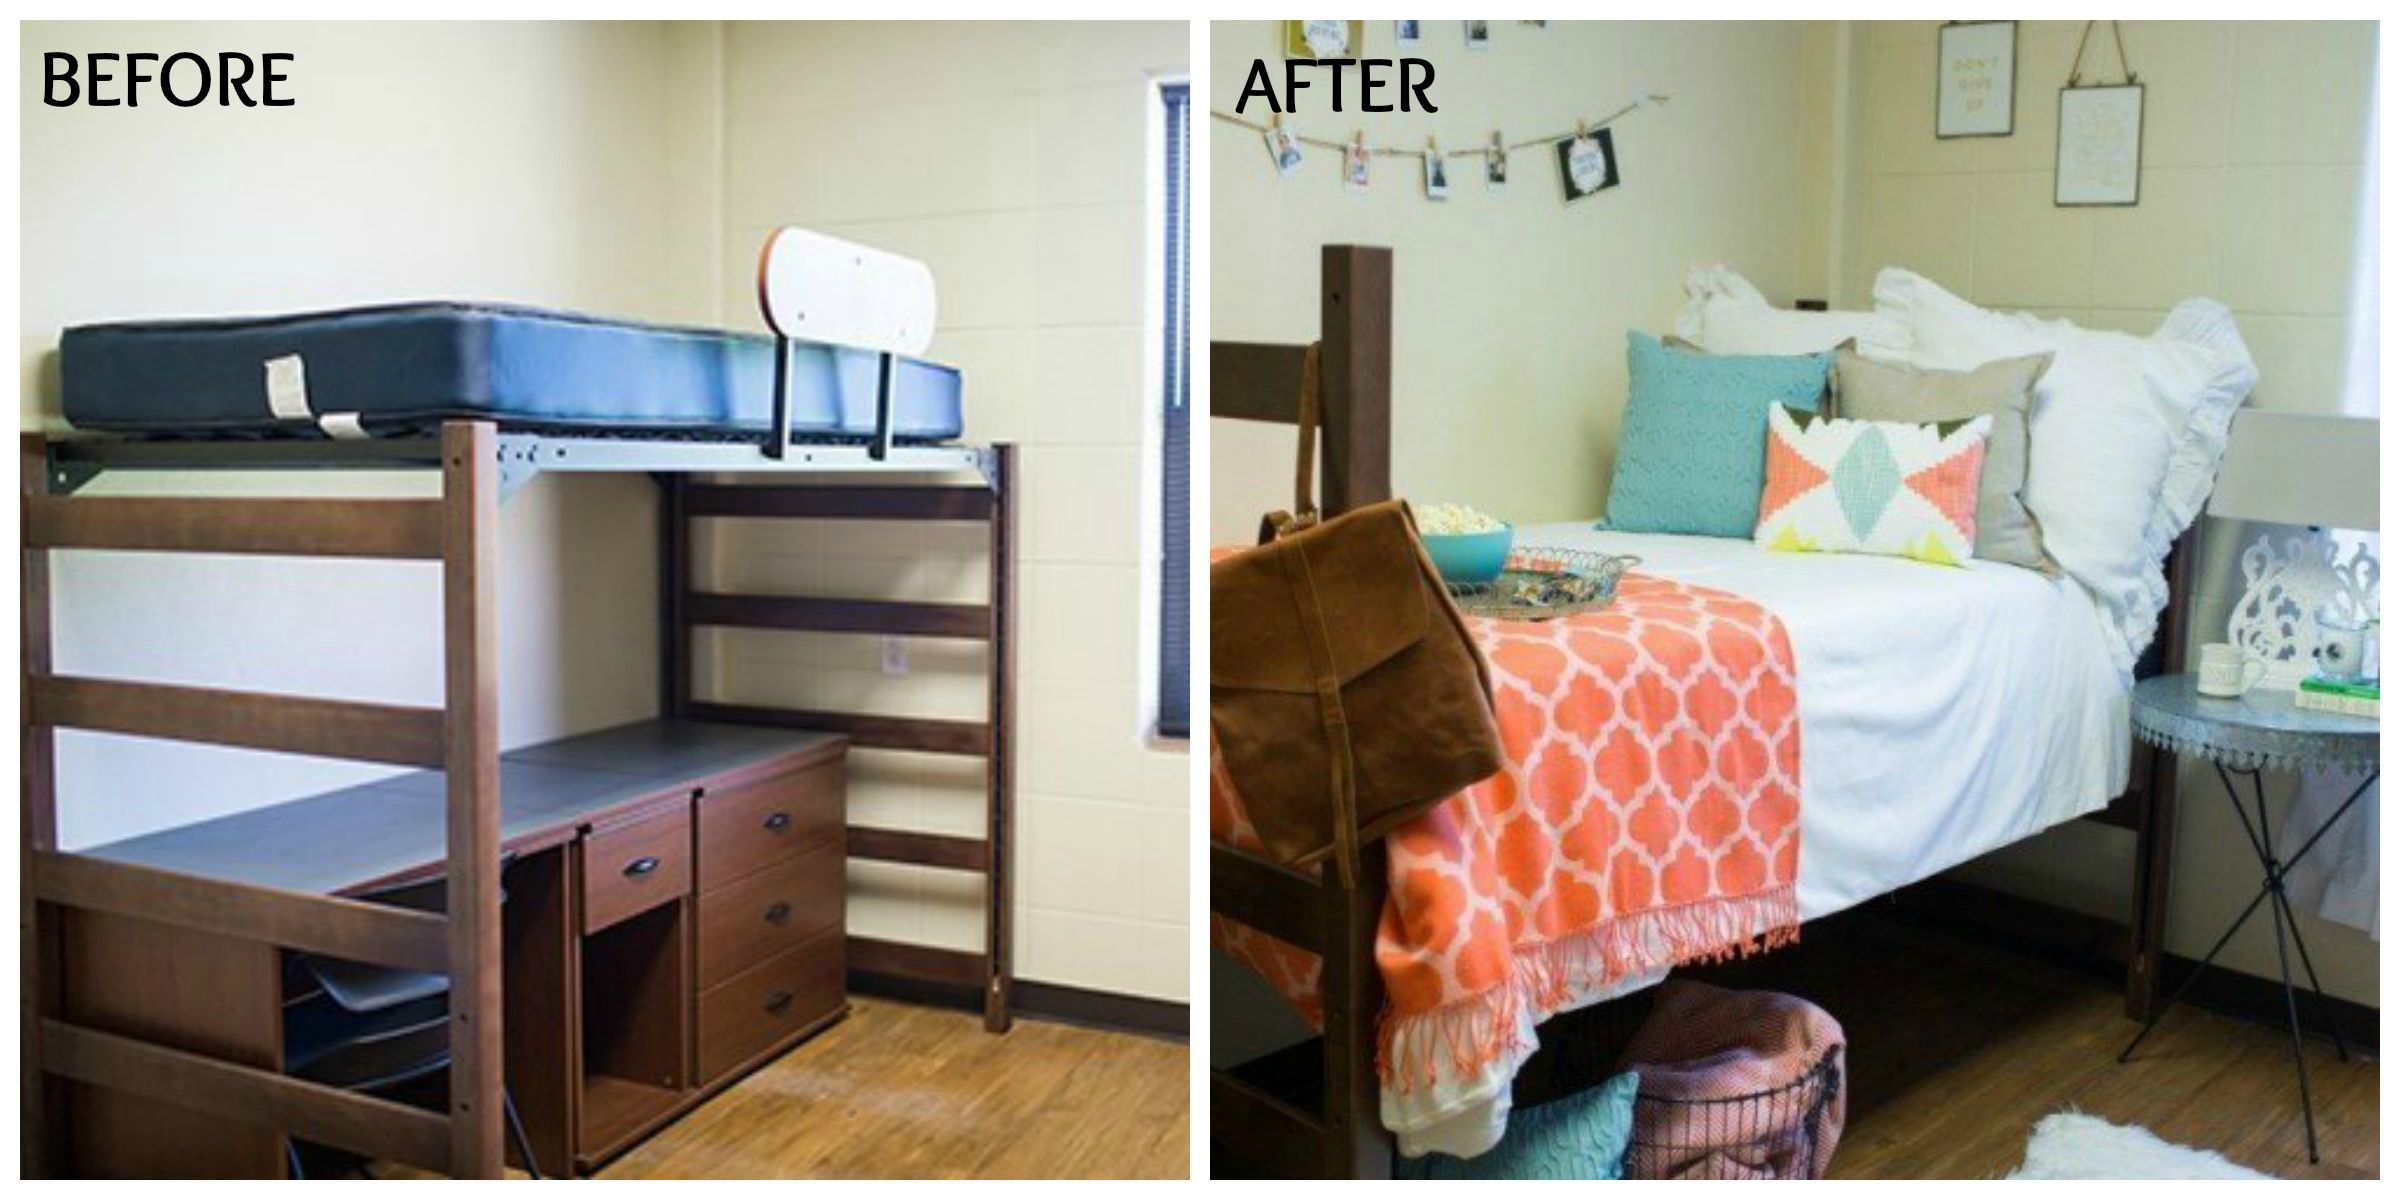 Decorating Ideas > Joanna Gaines Dorm Room Makeover  Magnolia Homes Decorating ~ 201556_Dorm Room Drinking Ideas